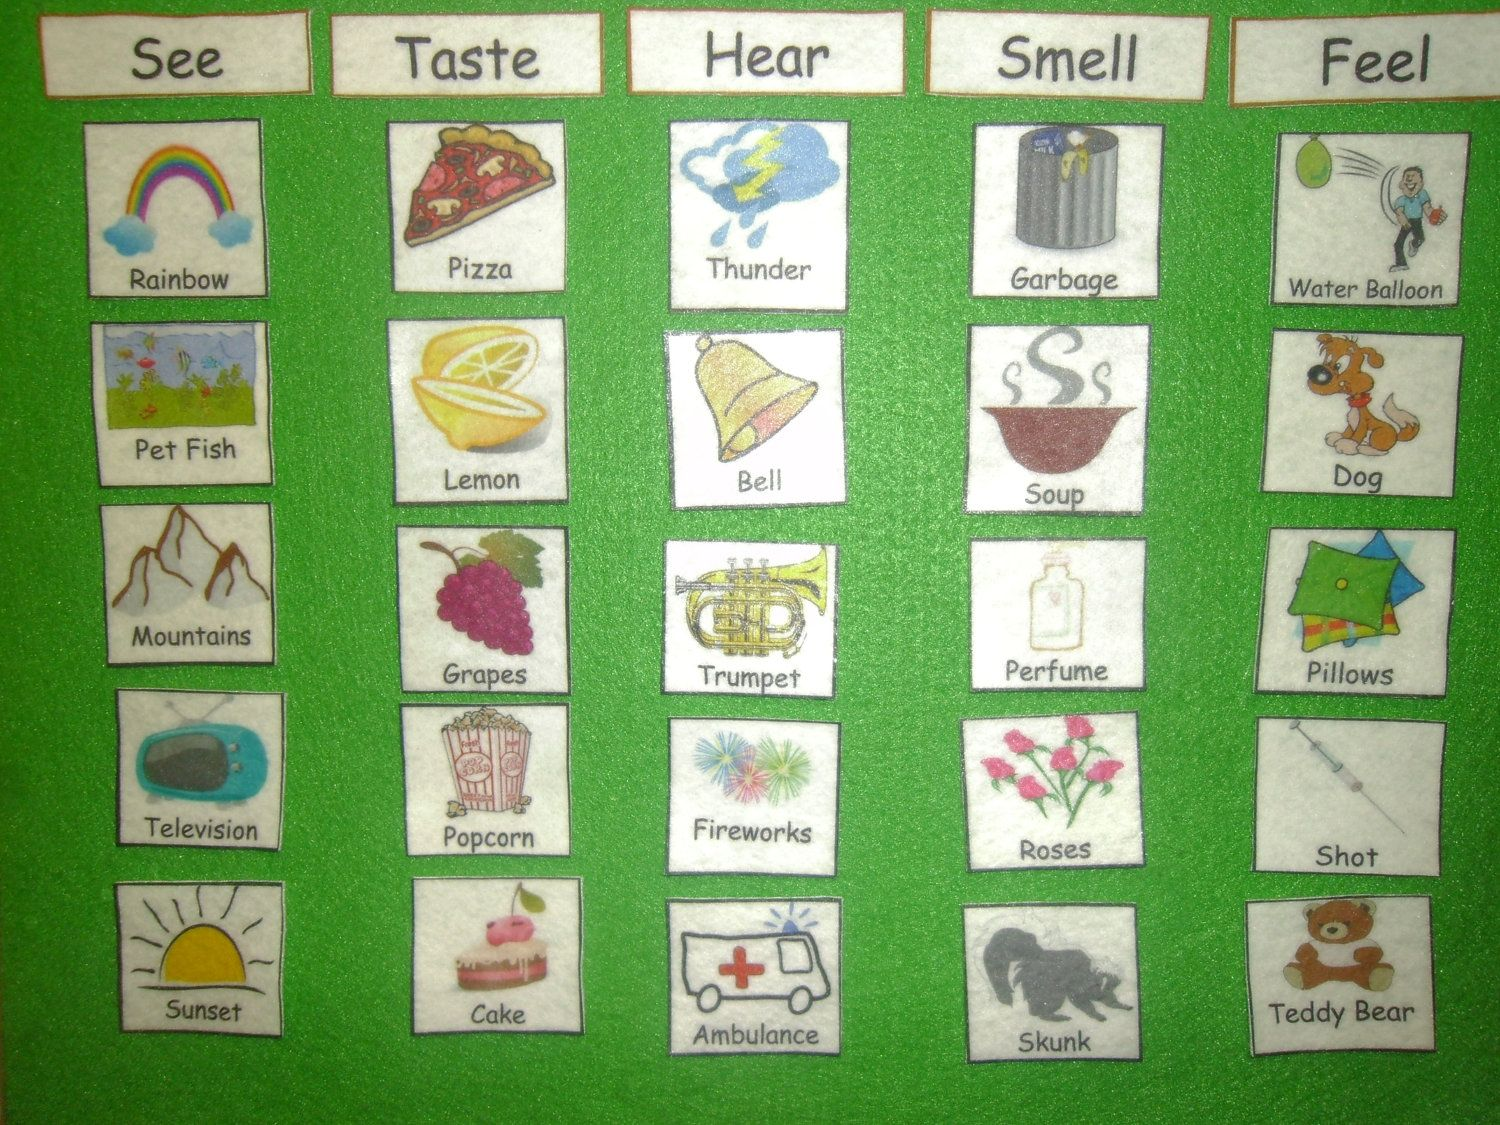 Felt Board Set 5 Senses Match English Spanish Or Dual By Ambrcoop 4 99